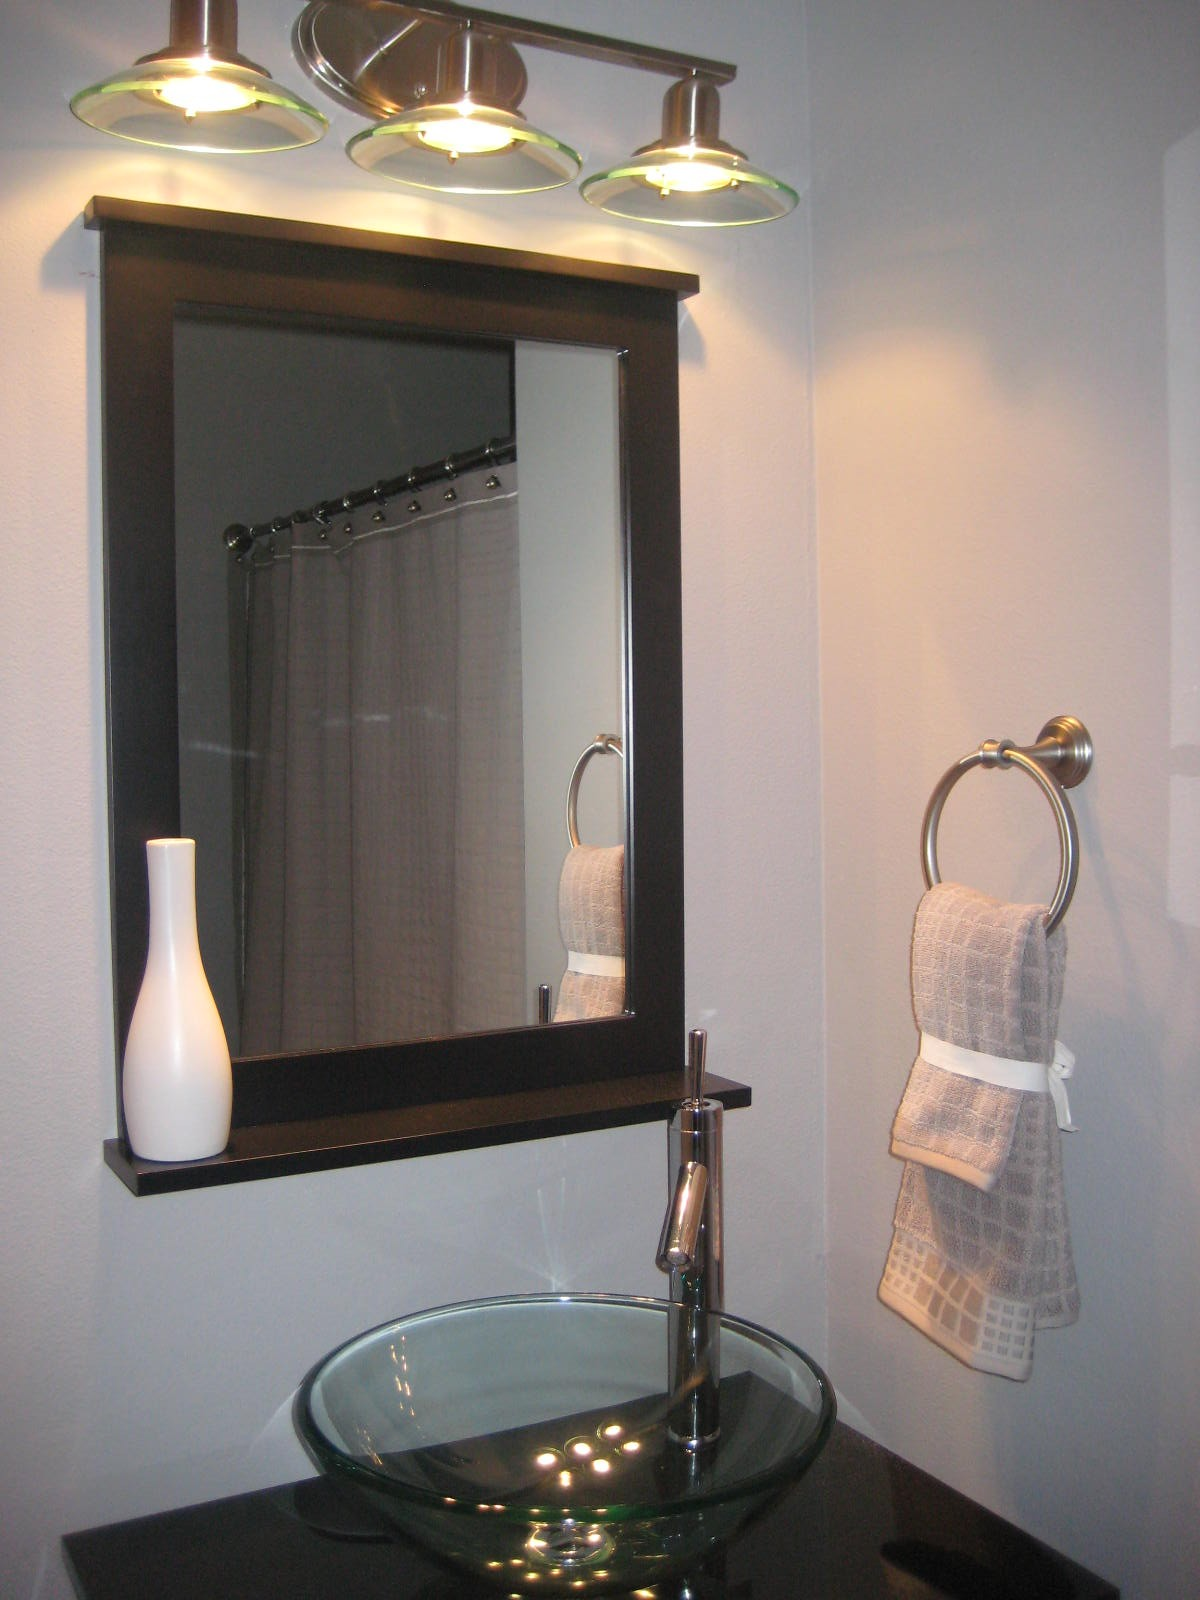 Diy guest bathroom remodel taryn whiteaker for Diy small bathroom